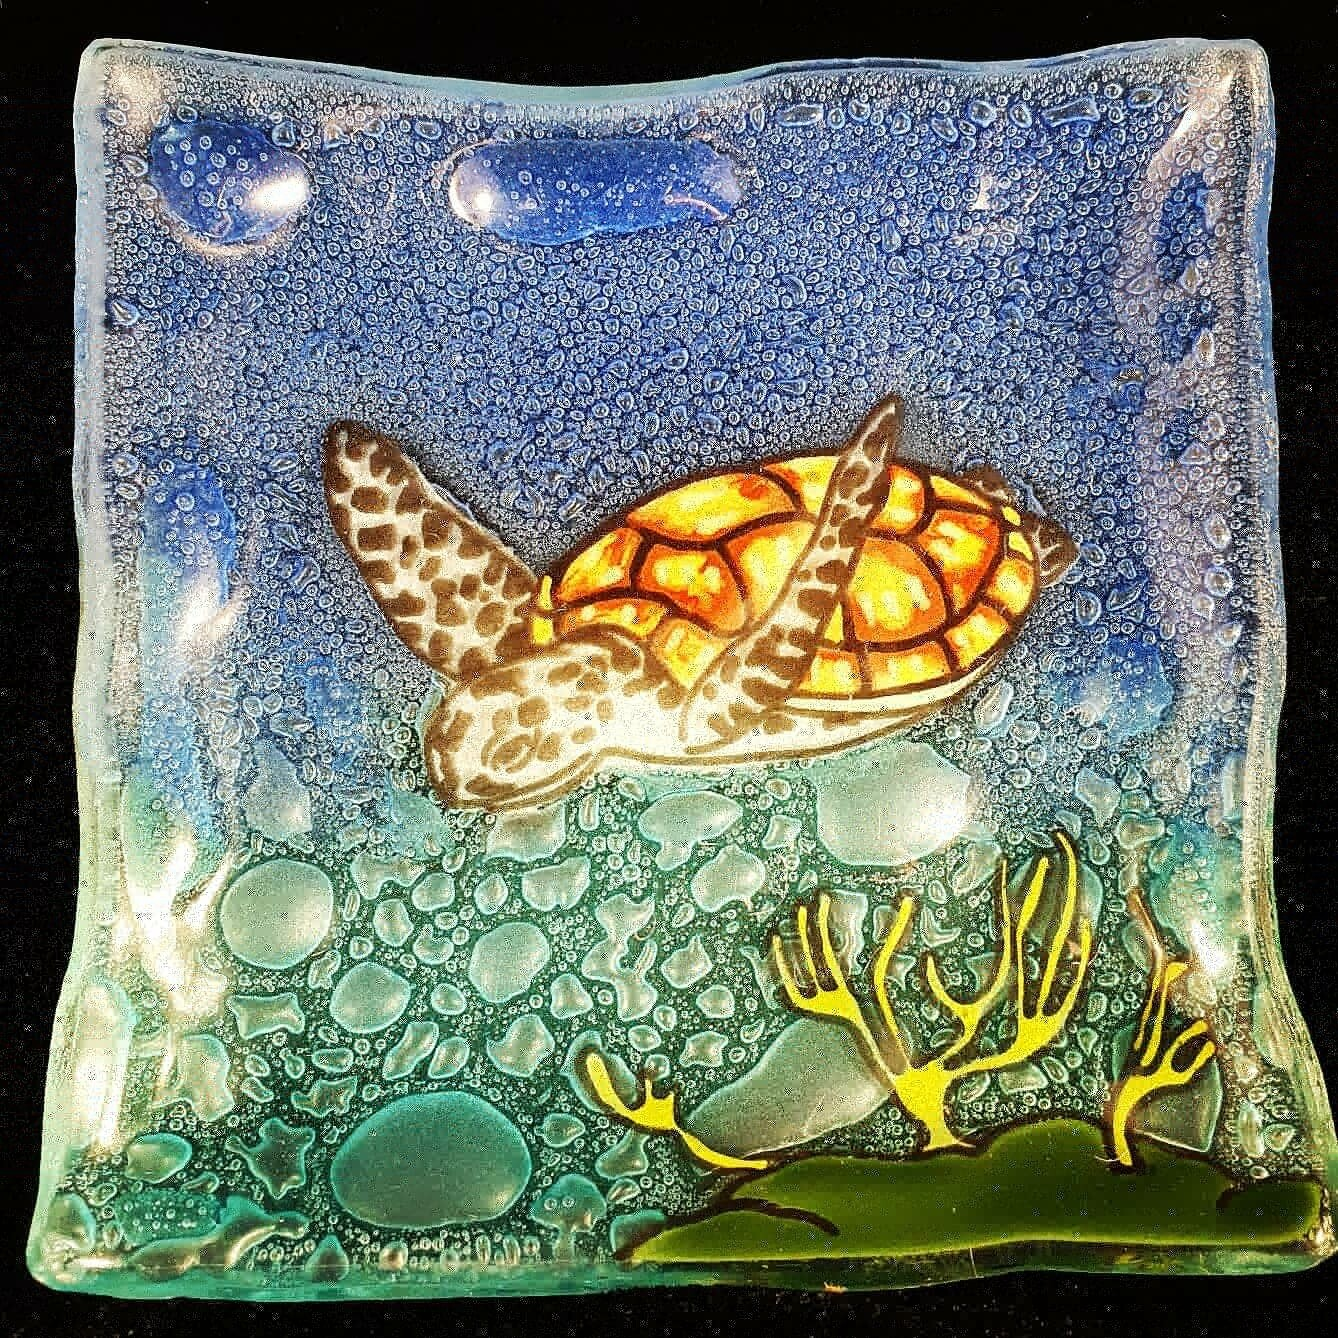 Small Turtle Slump Plate*